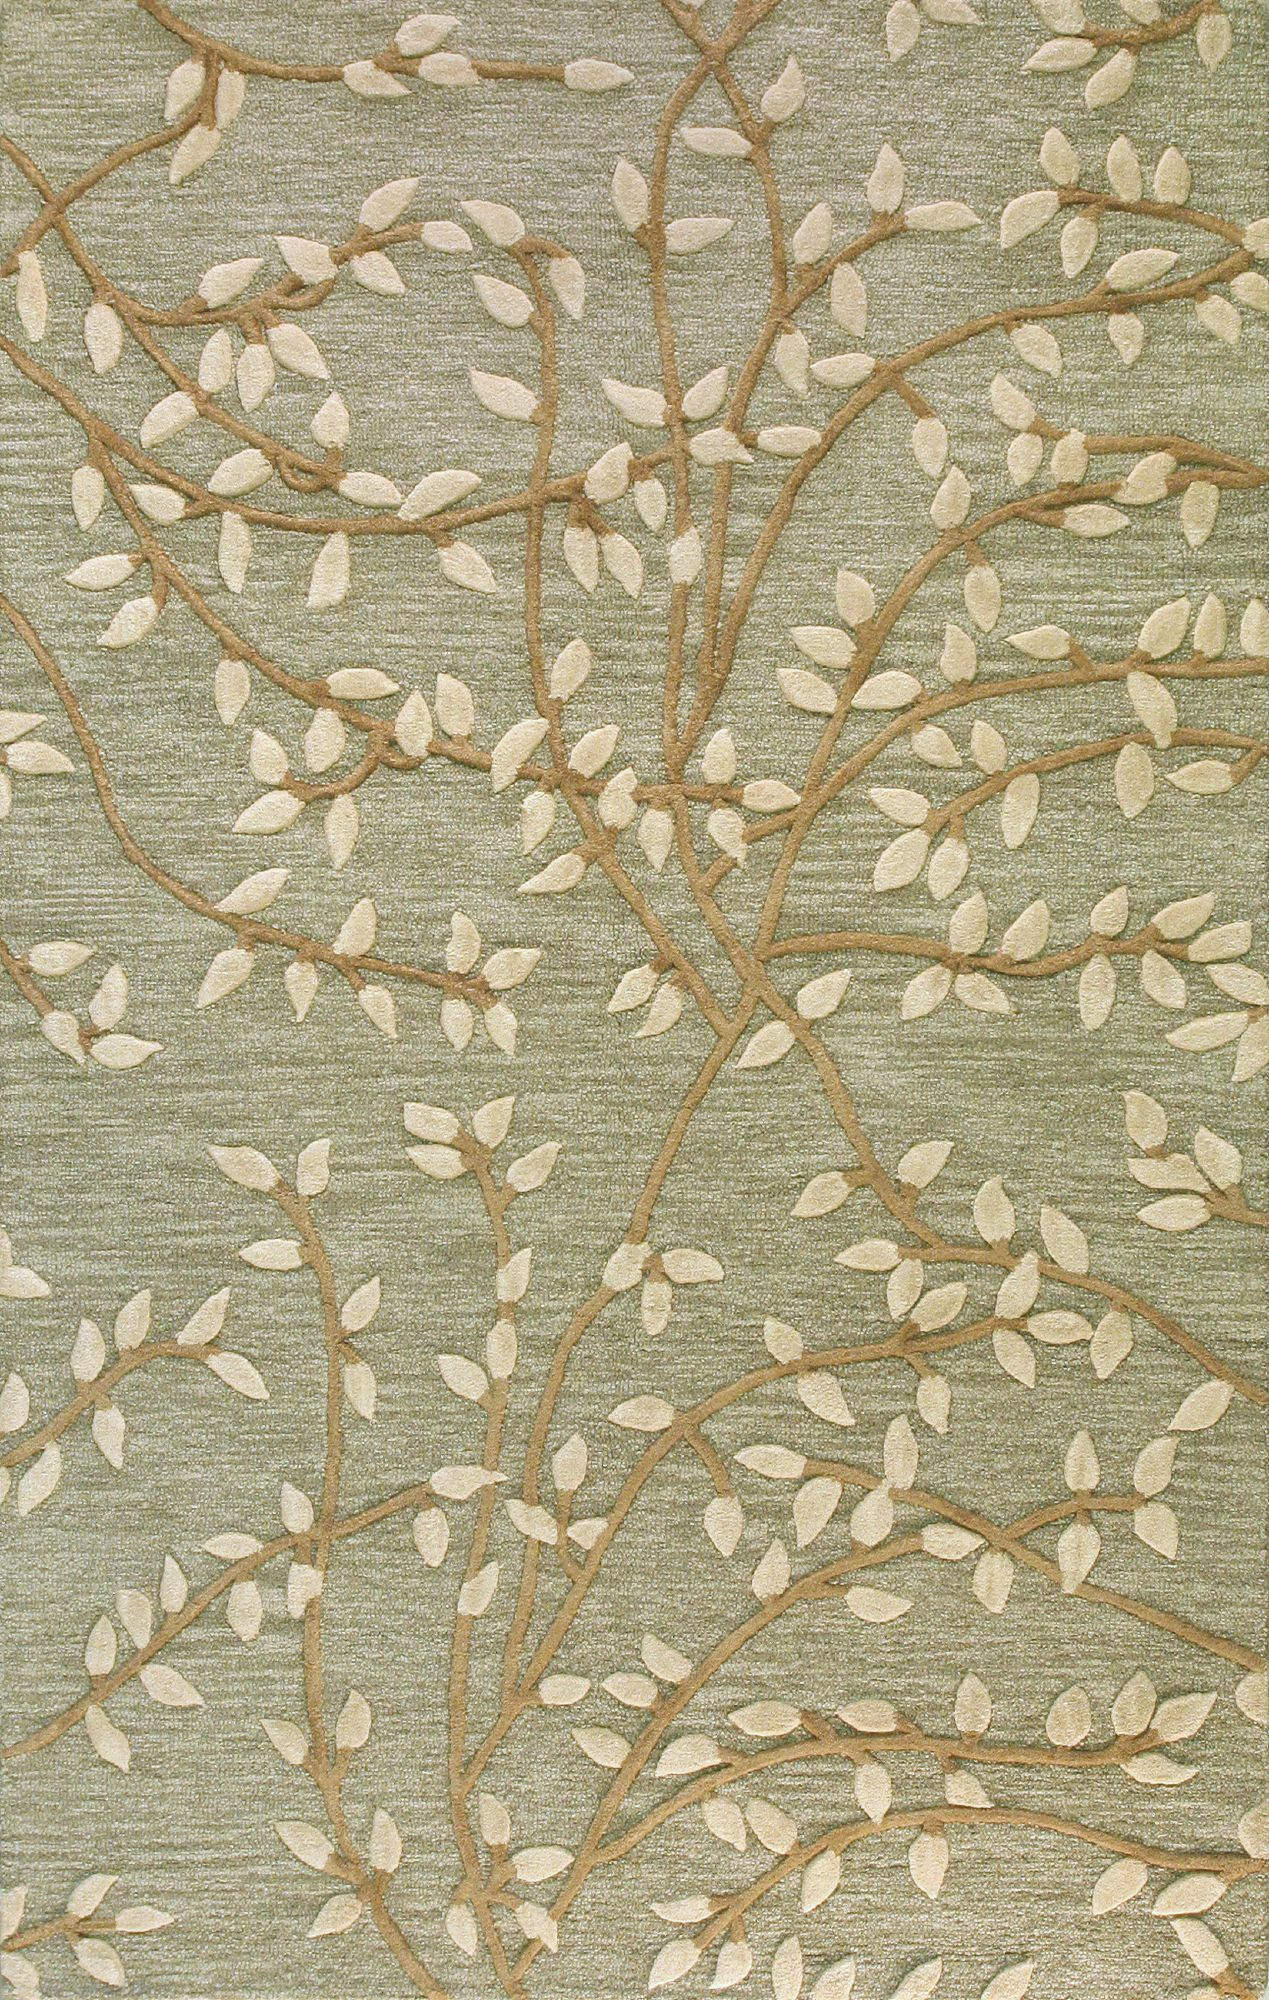 Richford Hand-Tufted Green Area Rug Rug Size: Rectangle 8'6